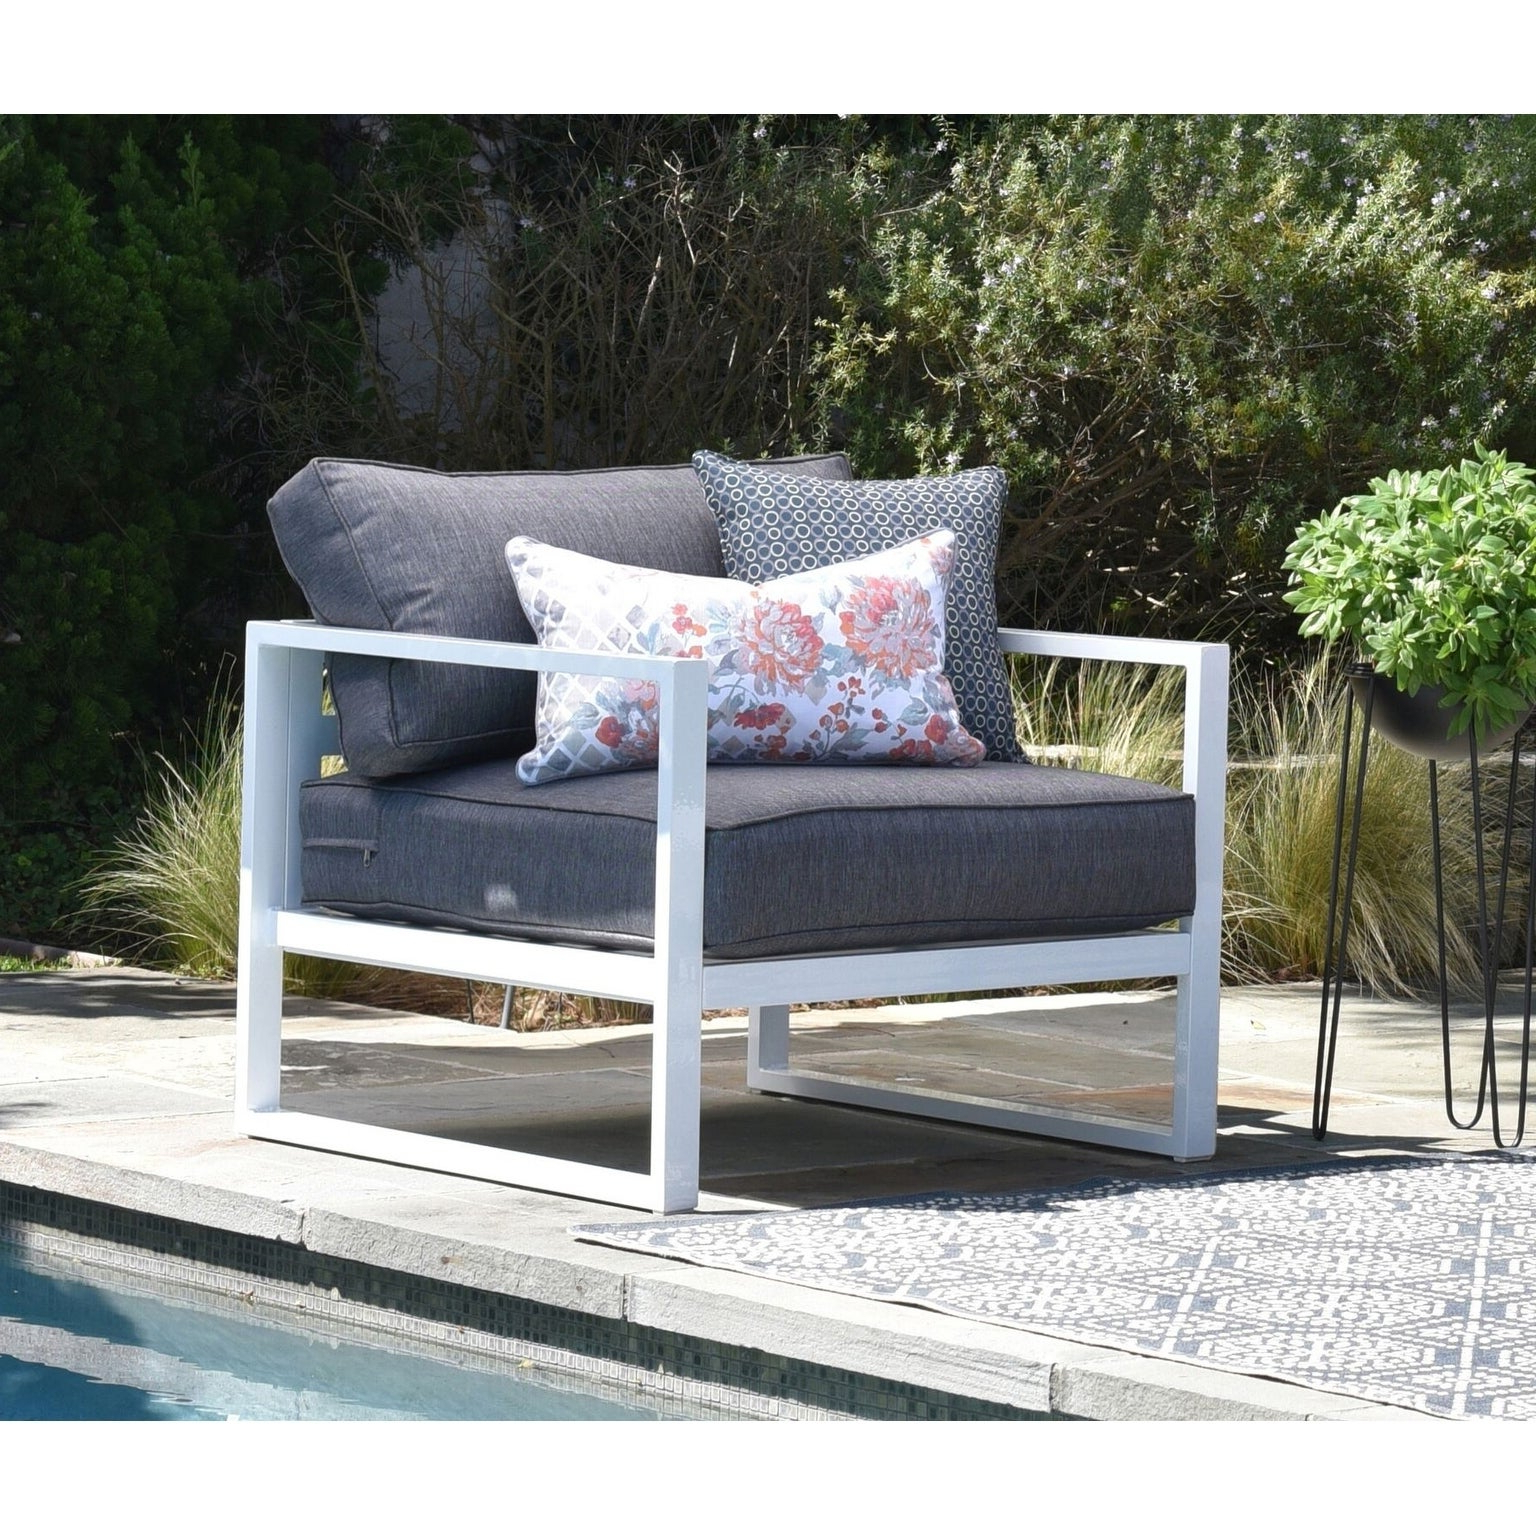 Paloma Sofas With Cushions Regarding Well Known Details About Elle Decor Paloma Outdoor Arm Chair White Single (Gallery 24 of 25)